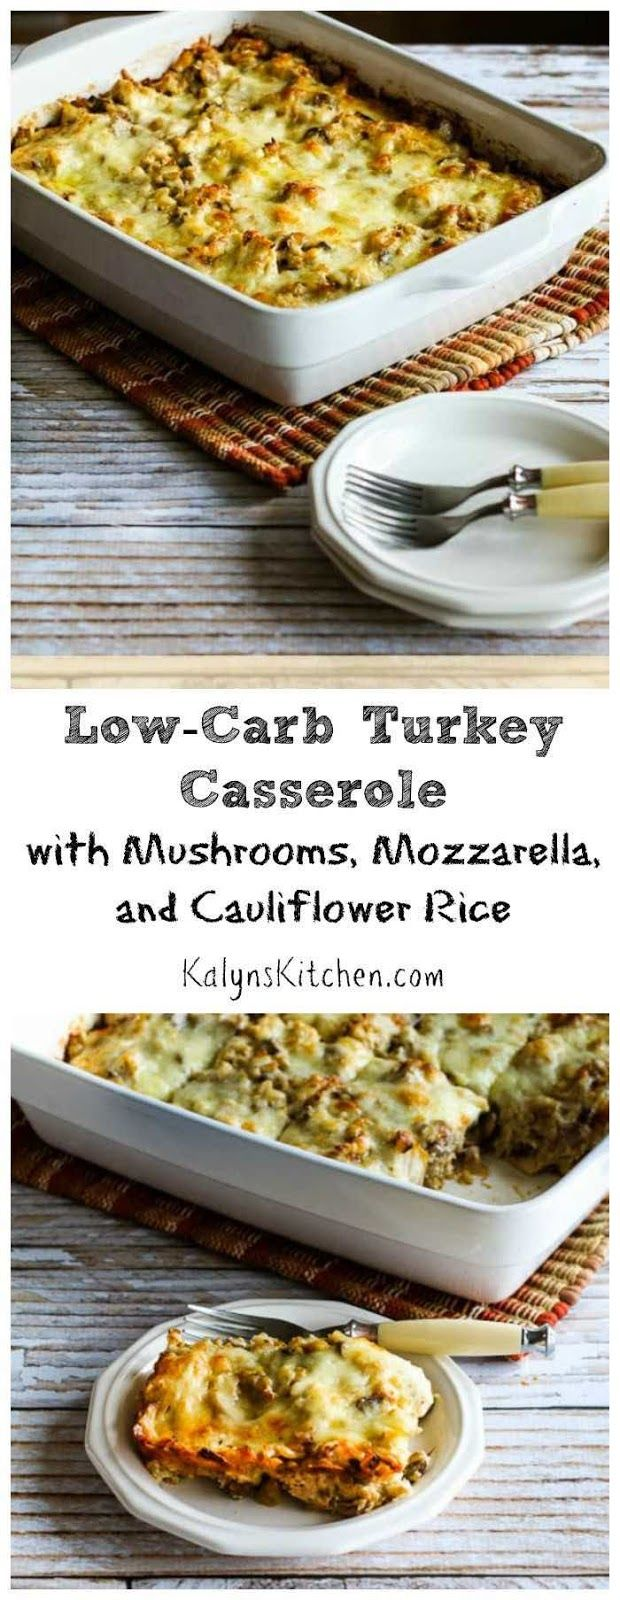 Use leftover turkey or chicken to make this Low-Carb Turkey Casserole with Mushrooms, Mozzarella, and Cauliflower Rice. Either way, this low-carb comfort food will taste great during the holidays or in the new year.  [found on KalynsKitchen.com]